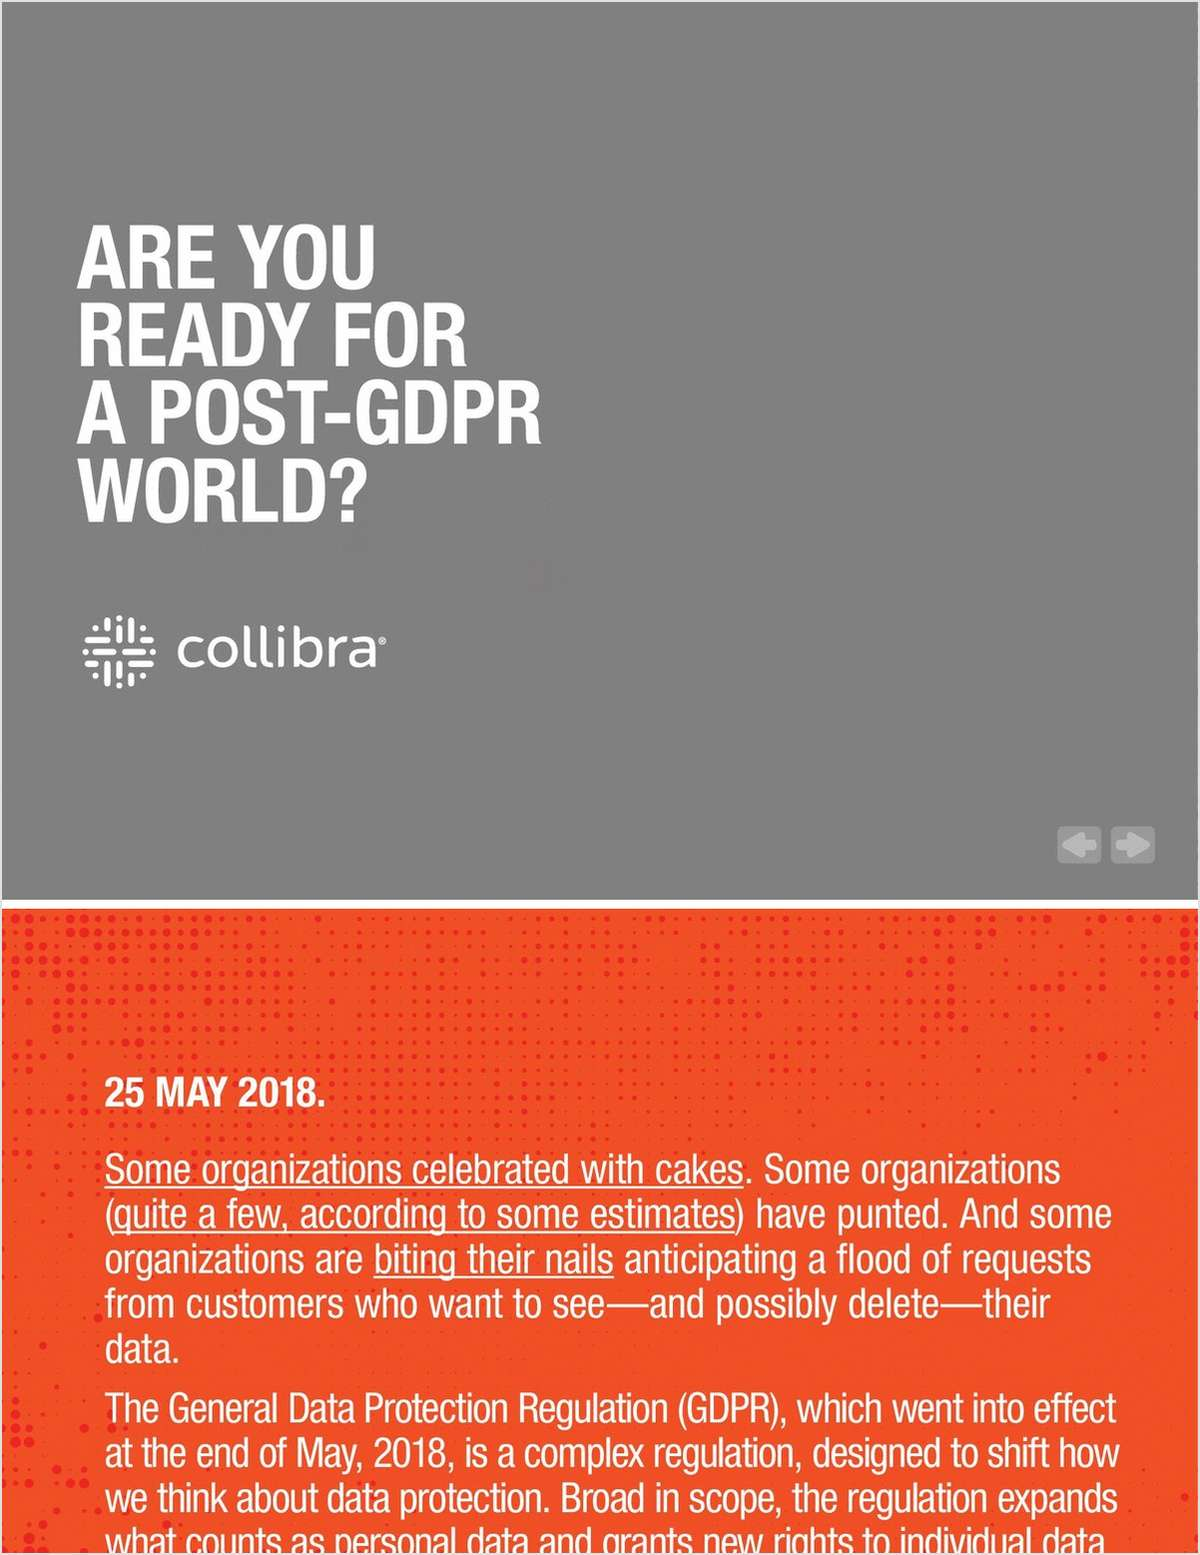 Are You Ready for a Post-GDPR World?